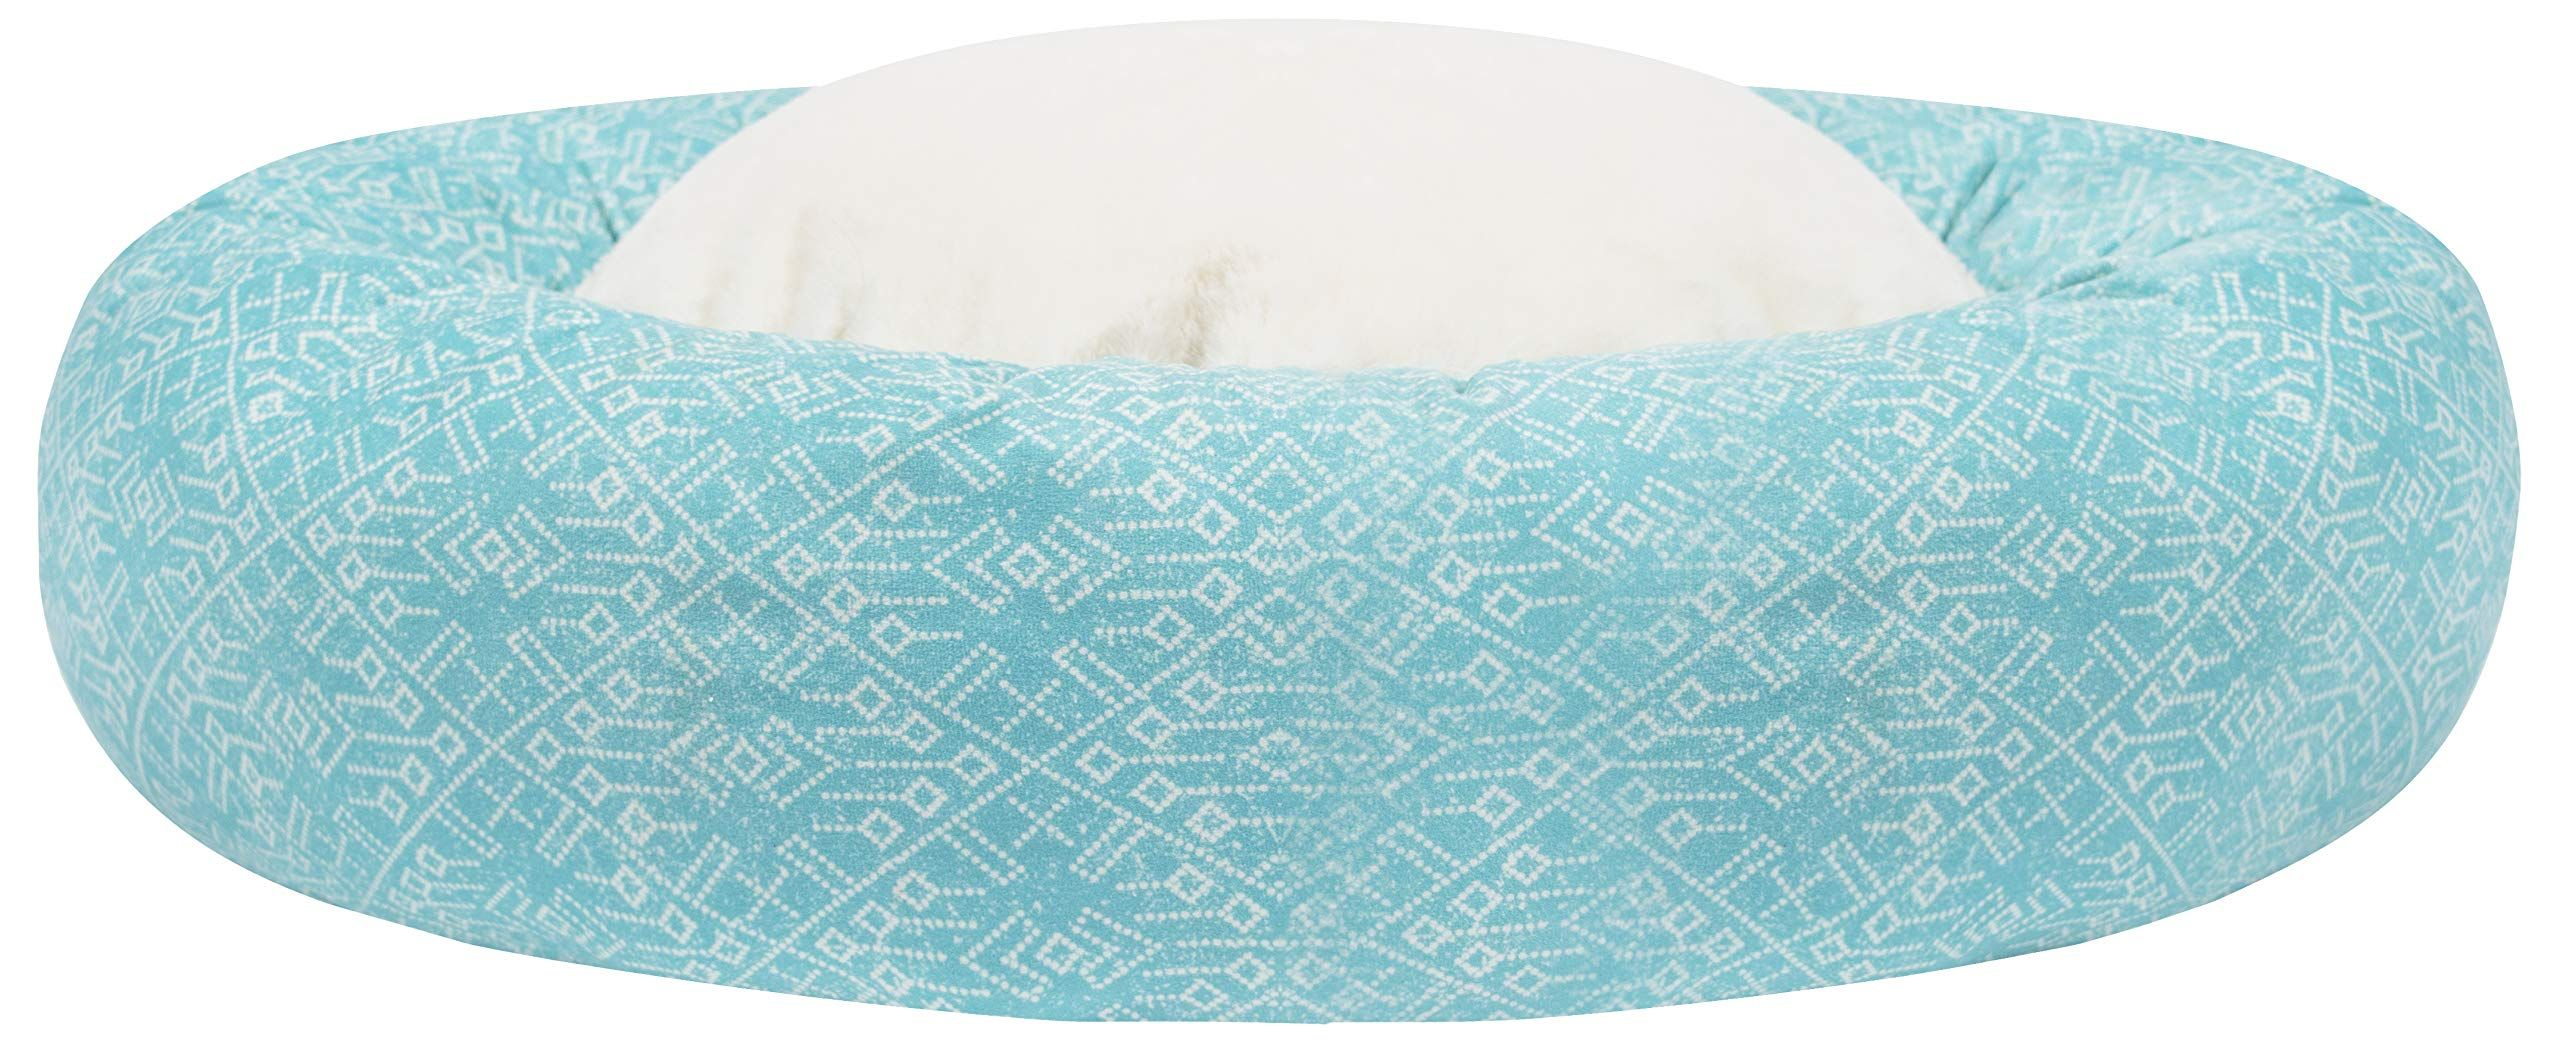 Canada Pooch Birch Bed Tuscany Teal Extra Large >>> Read